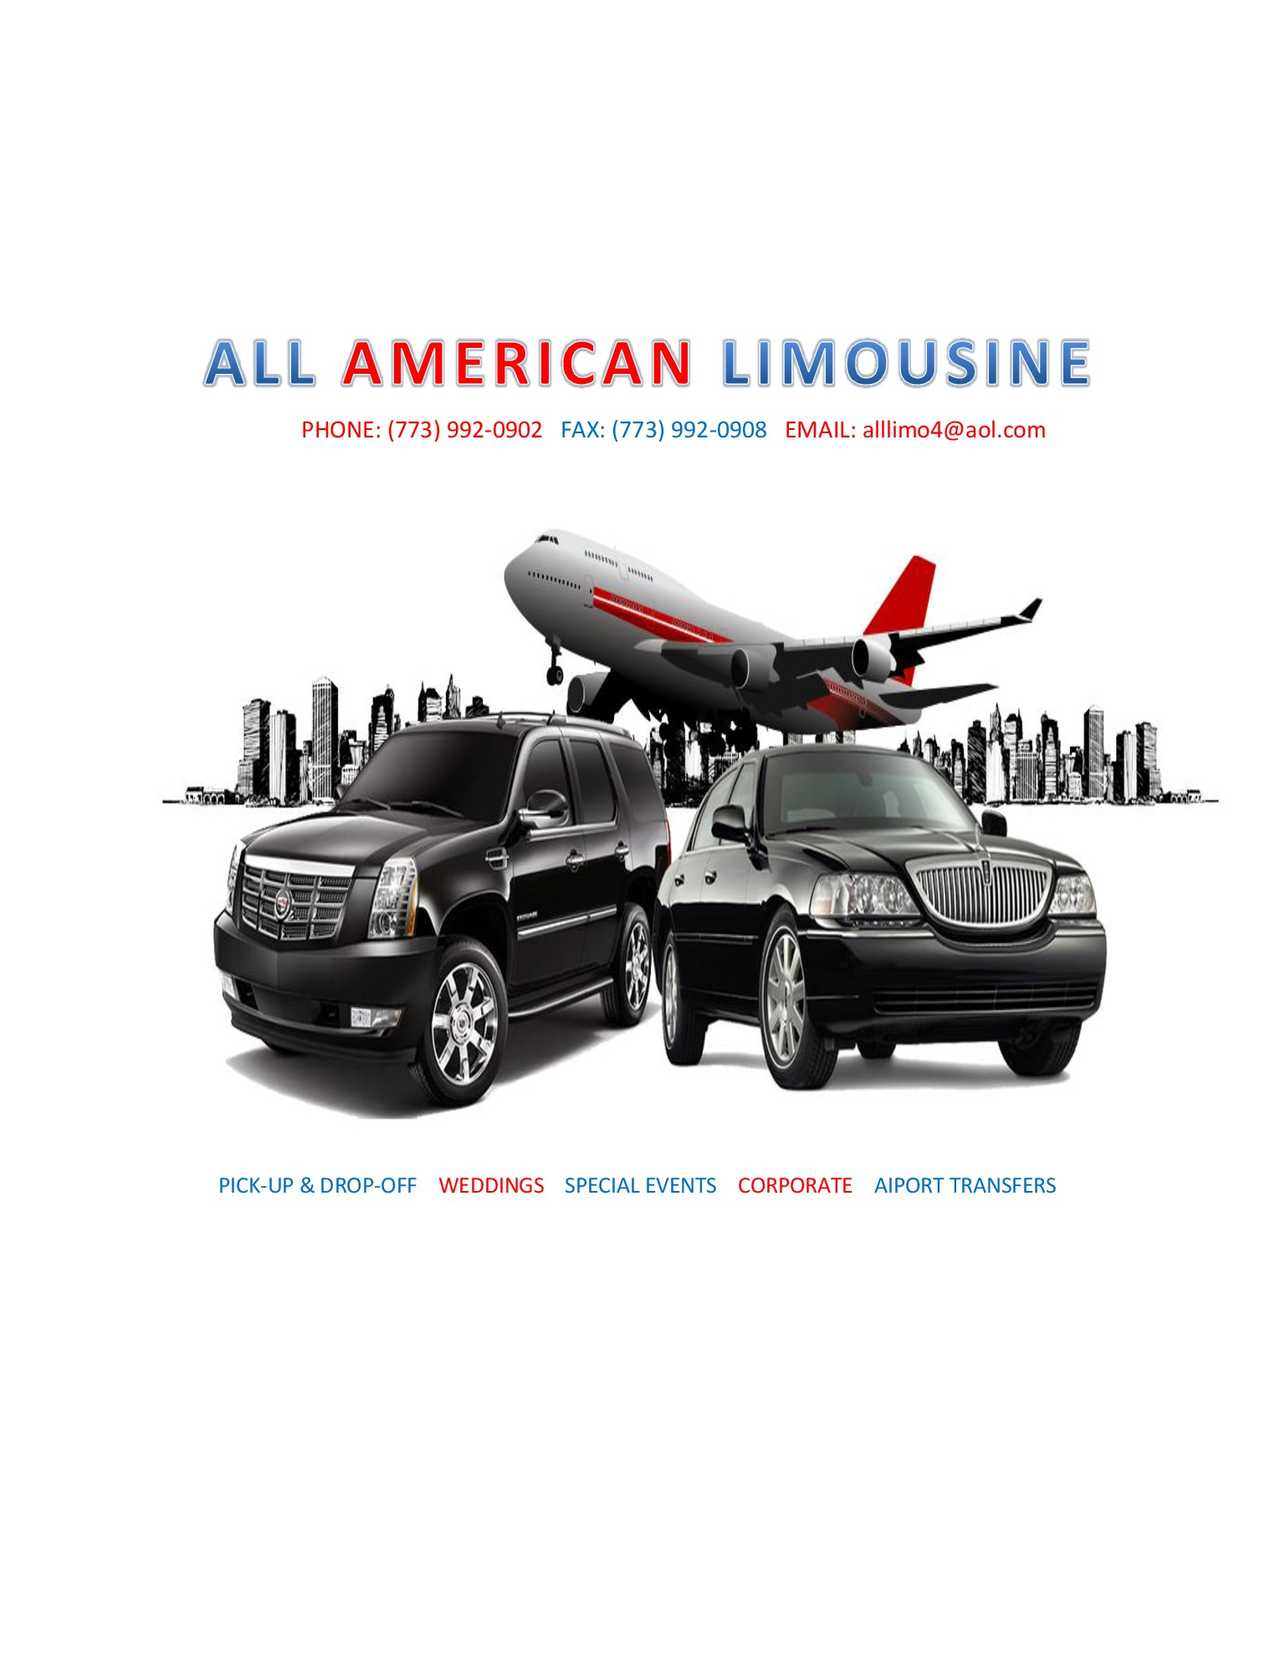 All American Limousine - Transportation - Transportation in Chicago IL